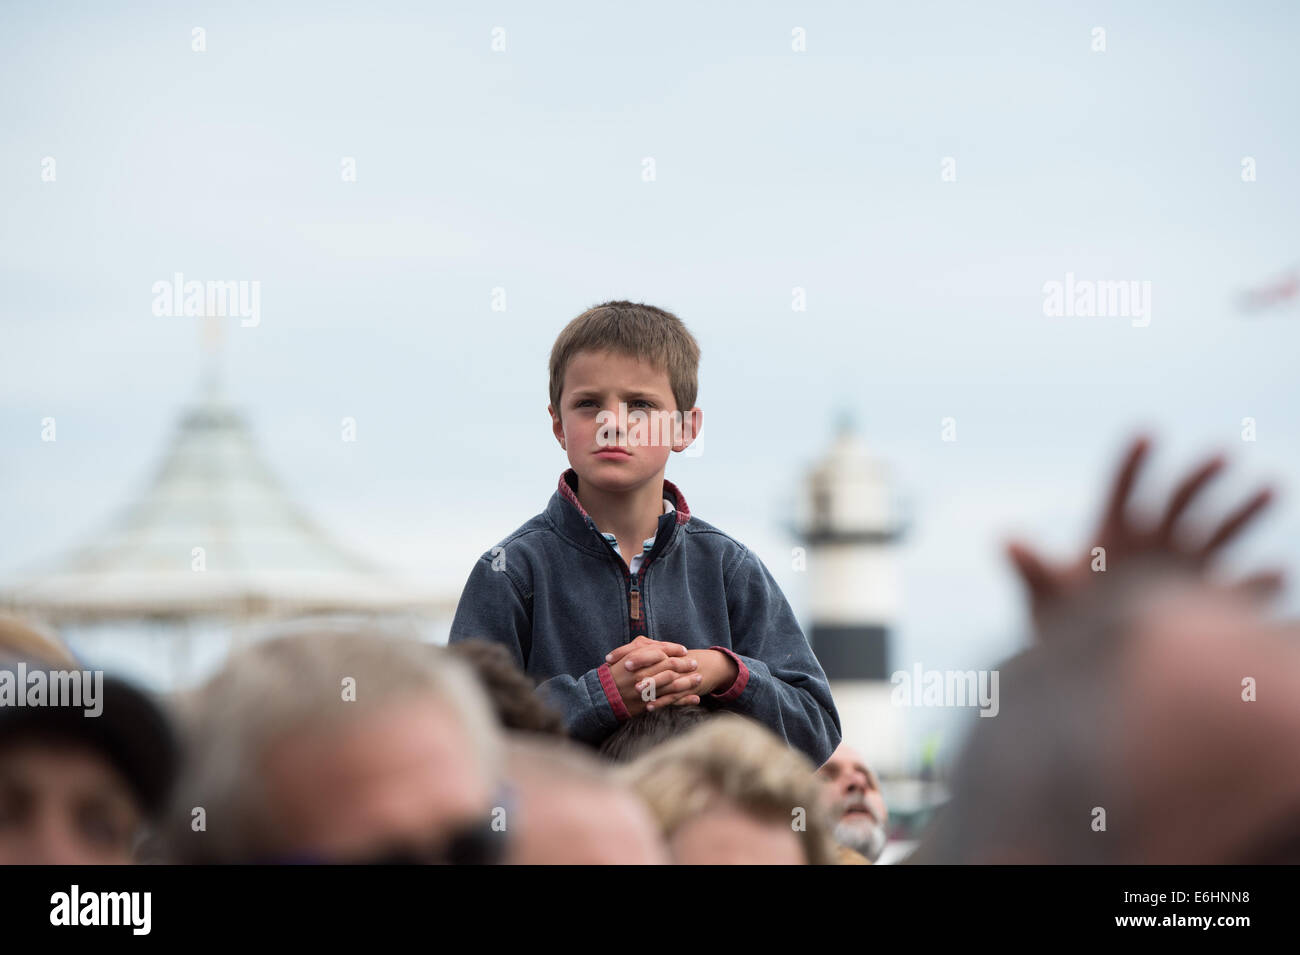 Southsea, UK. 24th Aug, 2014. Victorious Festival - Sunday, Southsea, Hampshire, England. A young festival goer - Stock Image